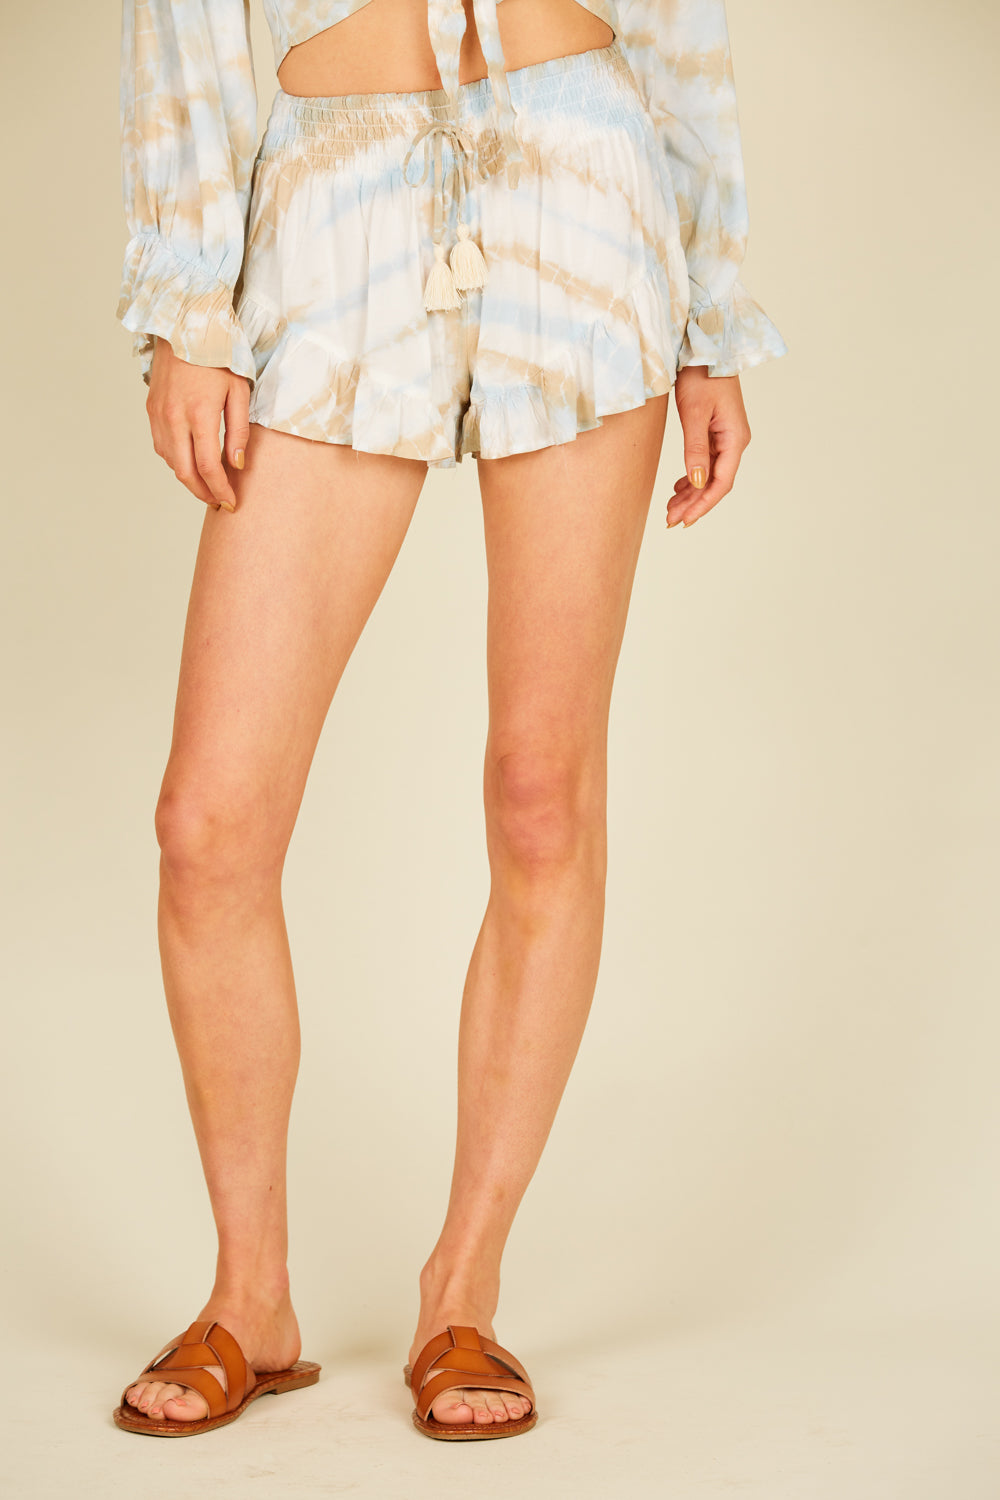 Sandy Beach Tie Dye Ruffle Short